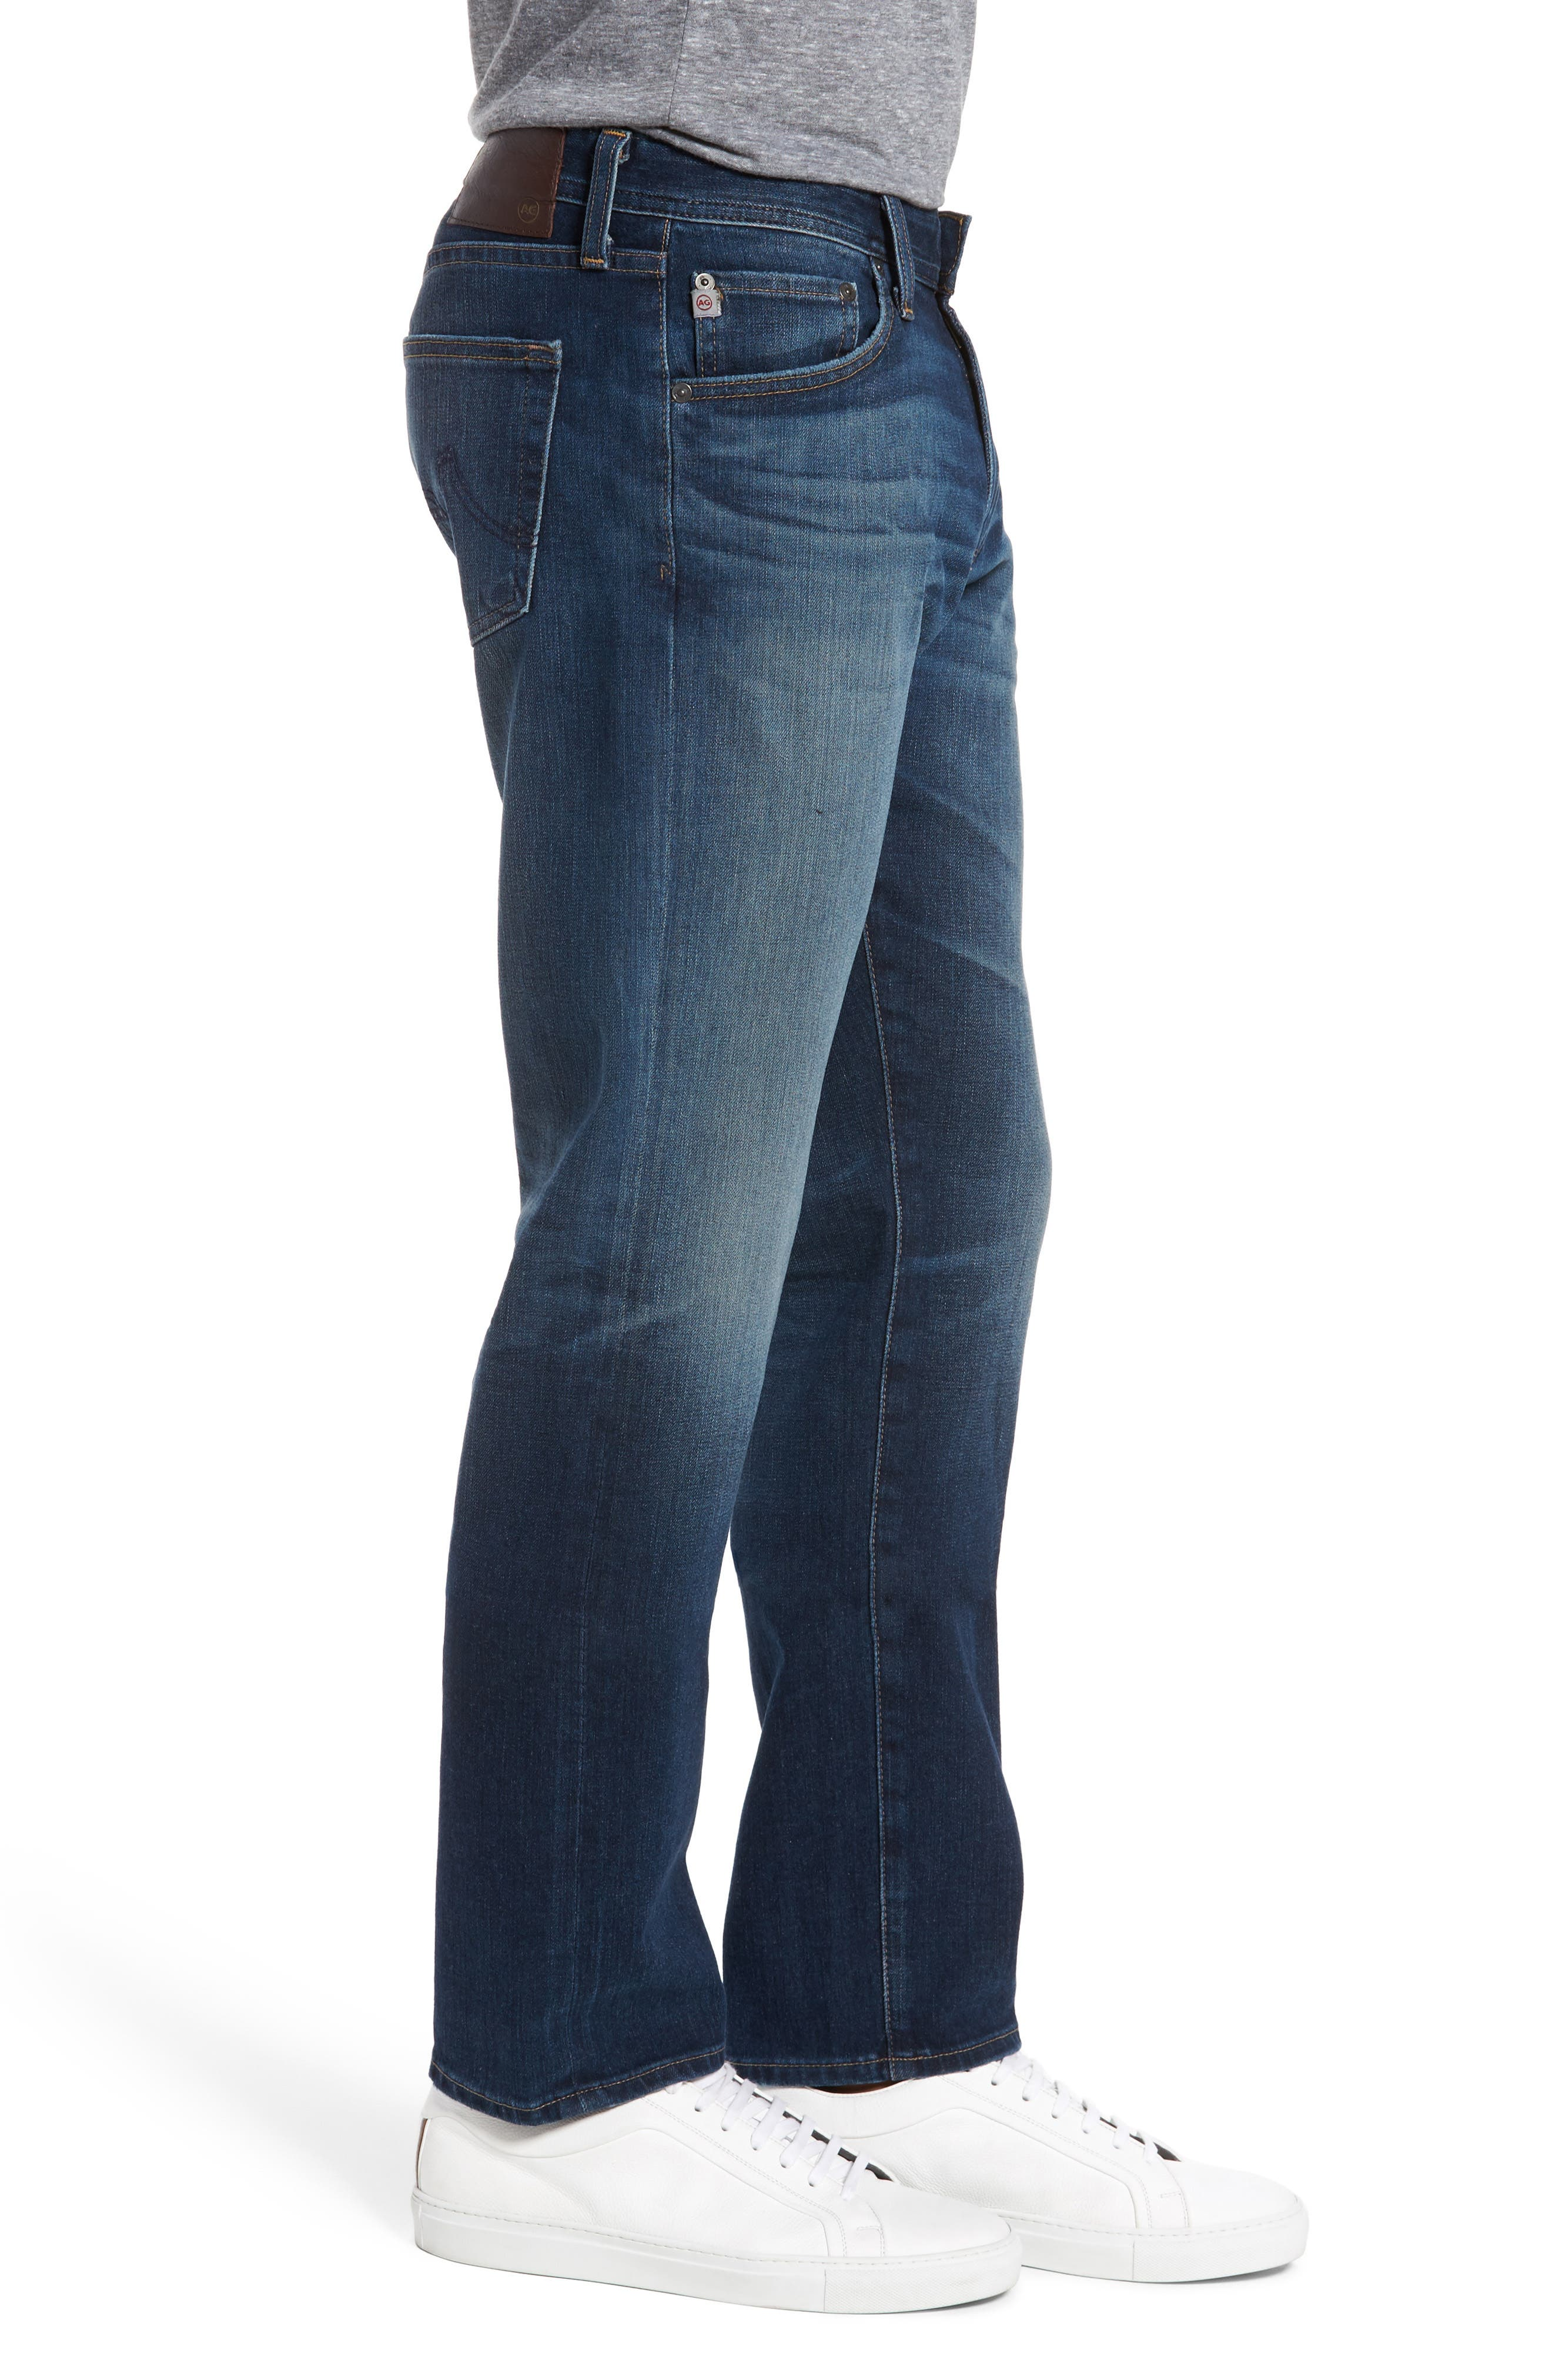 Graduate Slim Straight Fit Jeans,                             Alternate thumbnail 3, color,                             10 Years Shortcut